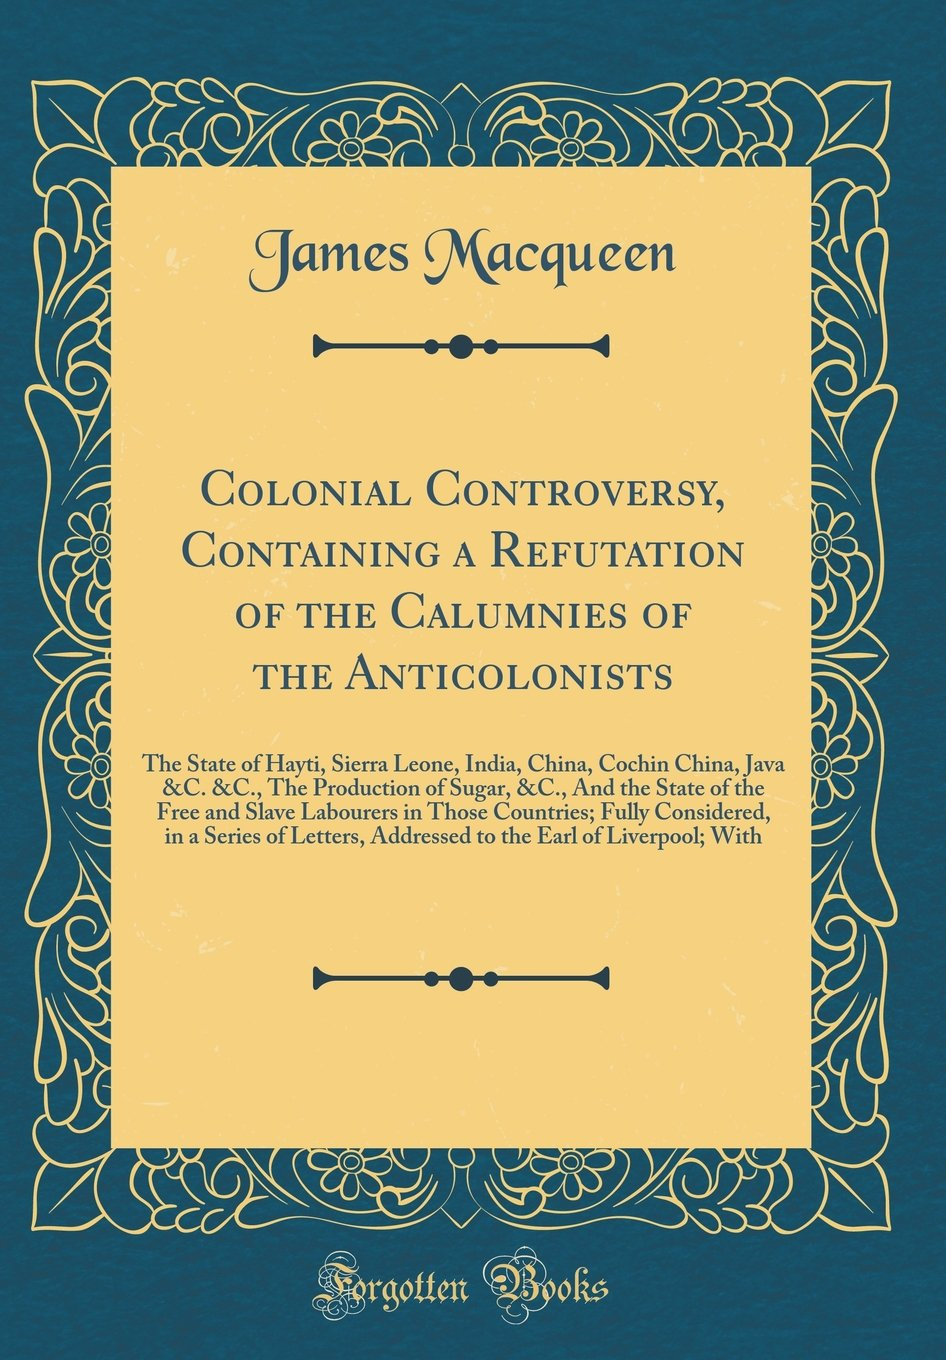 Read Online Colonial Controversy, Containing a Refutation of the Calumnies of the Anticolonists: The State of Hayti, Sierra Leone, India, China, Cochin China, ... Free and Slave Labourers in Those Countries ebook